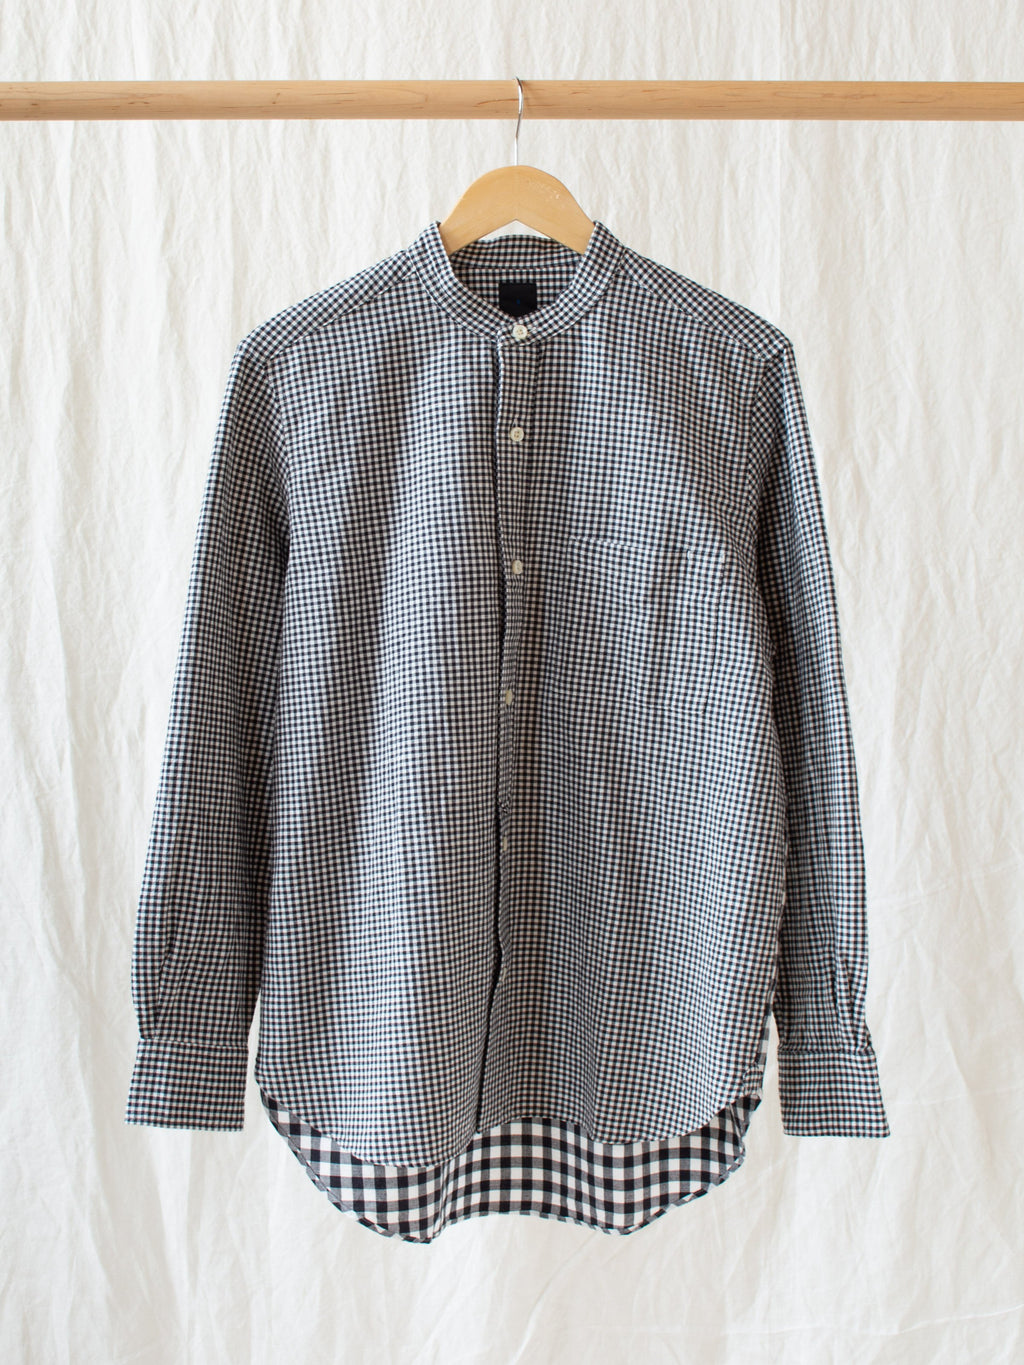 Namu Shop - Maillot Stand Combi Shirt - Black Check